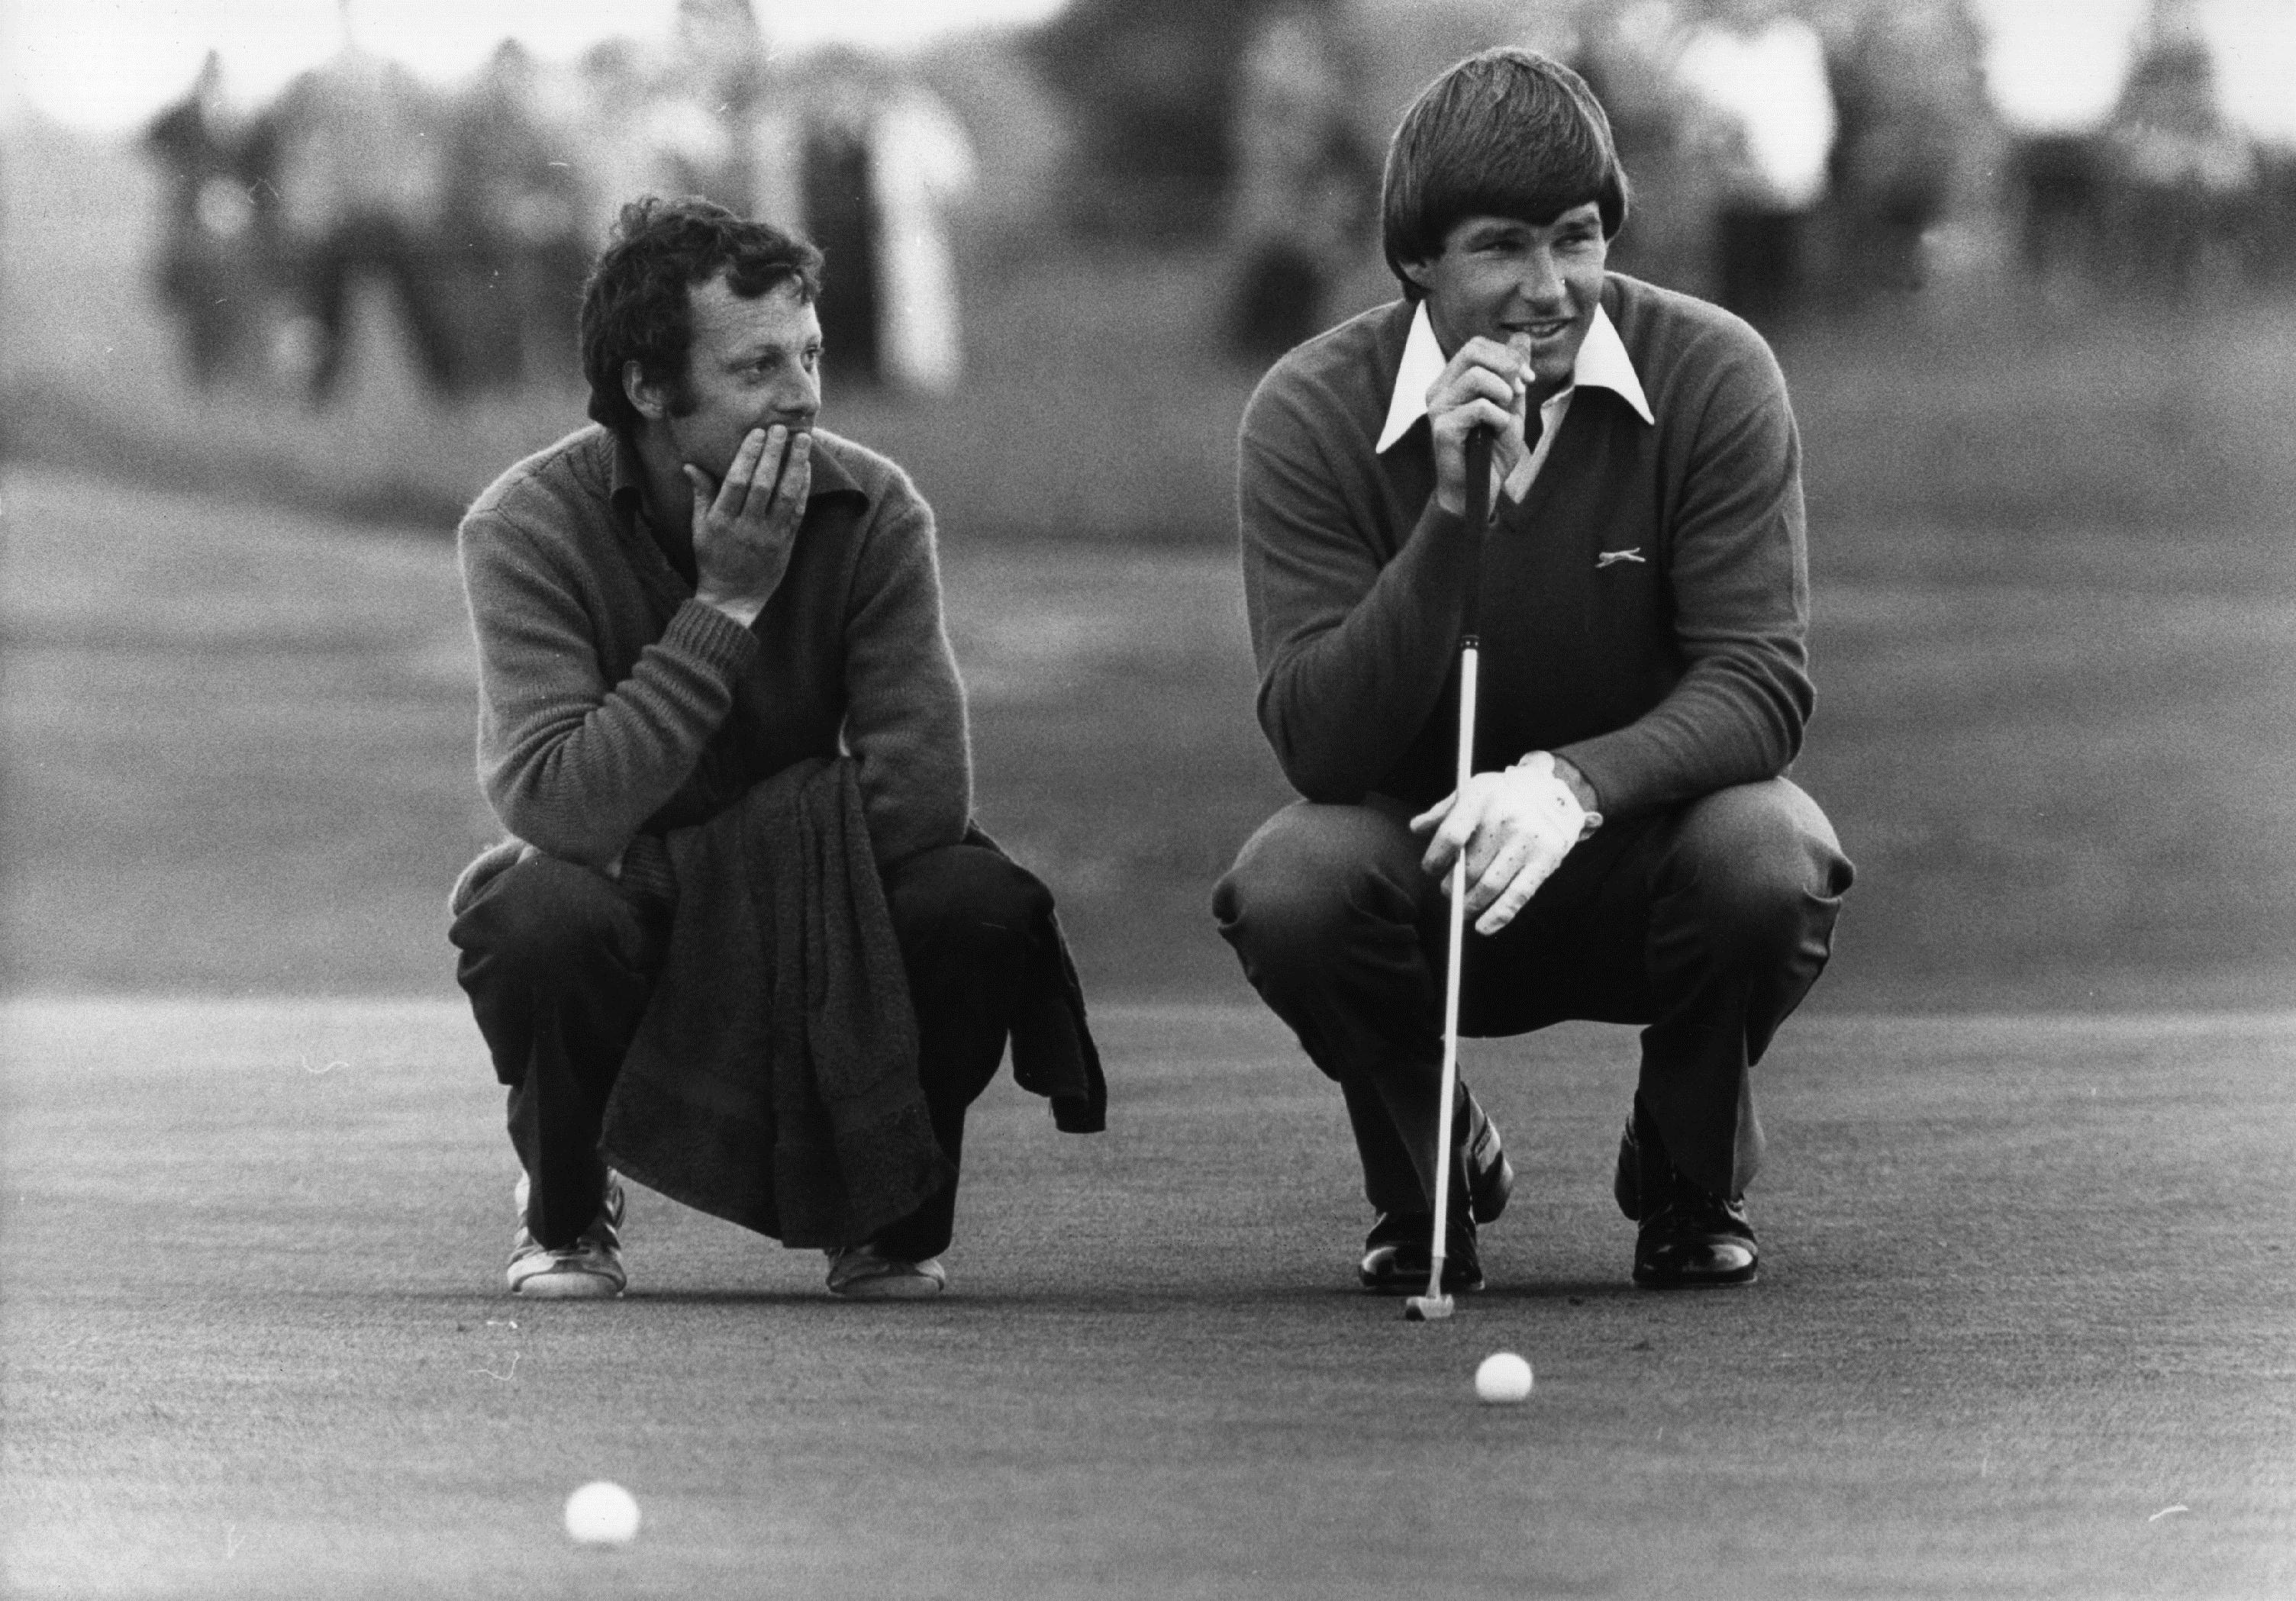 Faldo made his debut in the Open in 1976 at Royal Birkdale, finishing tied 28th (Photo: Getty Images)